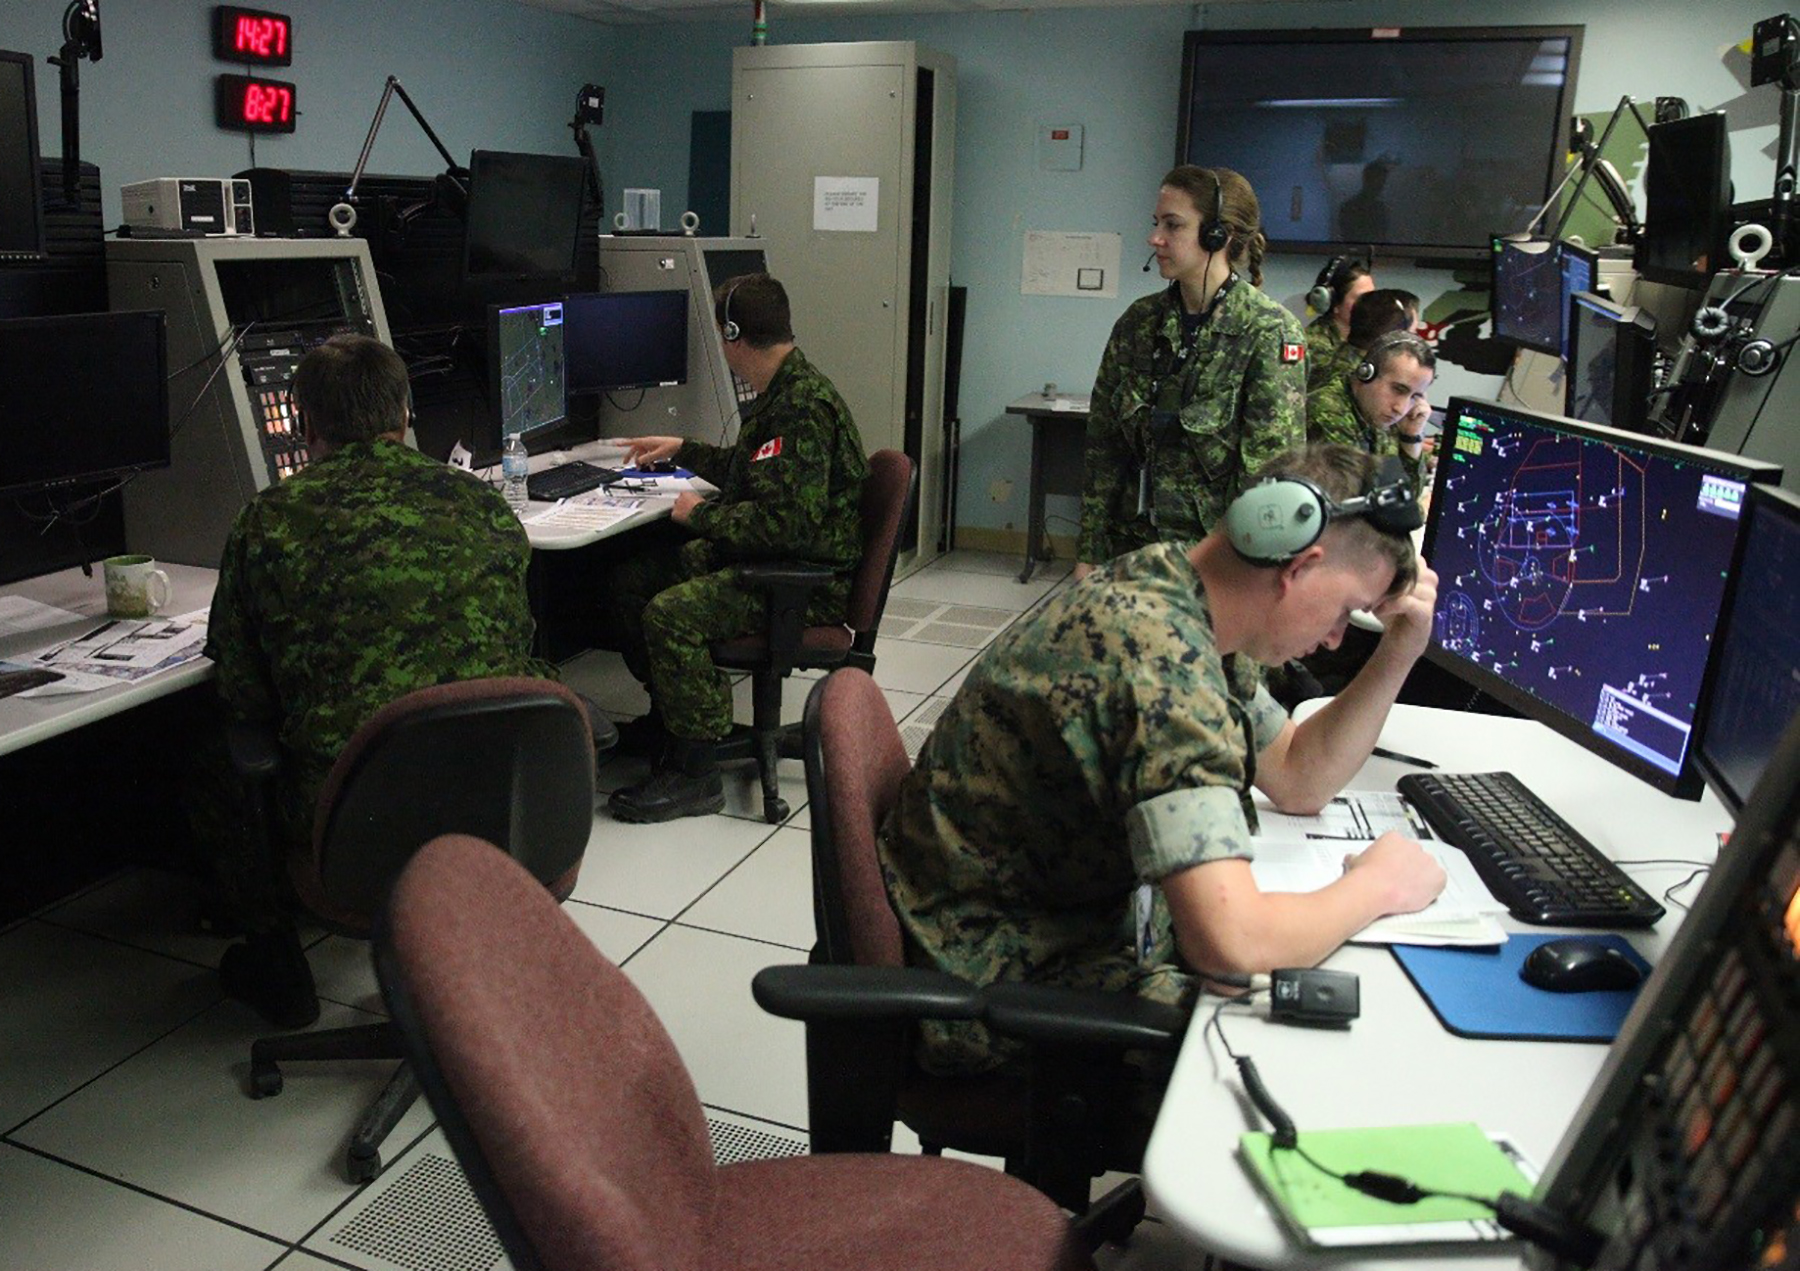 Men and women in disruptive pattern uniforms work at computer stations in a control room.